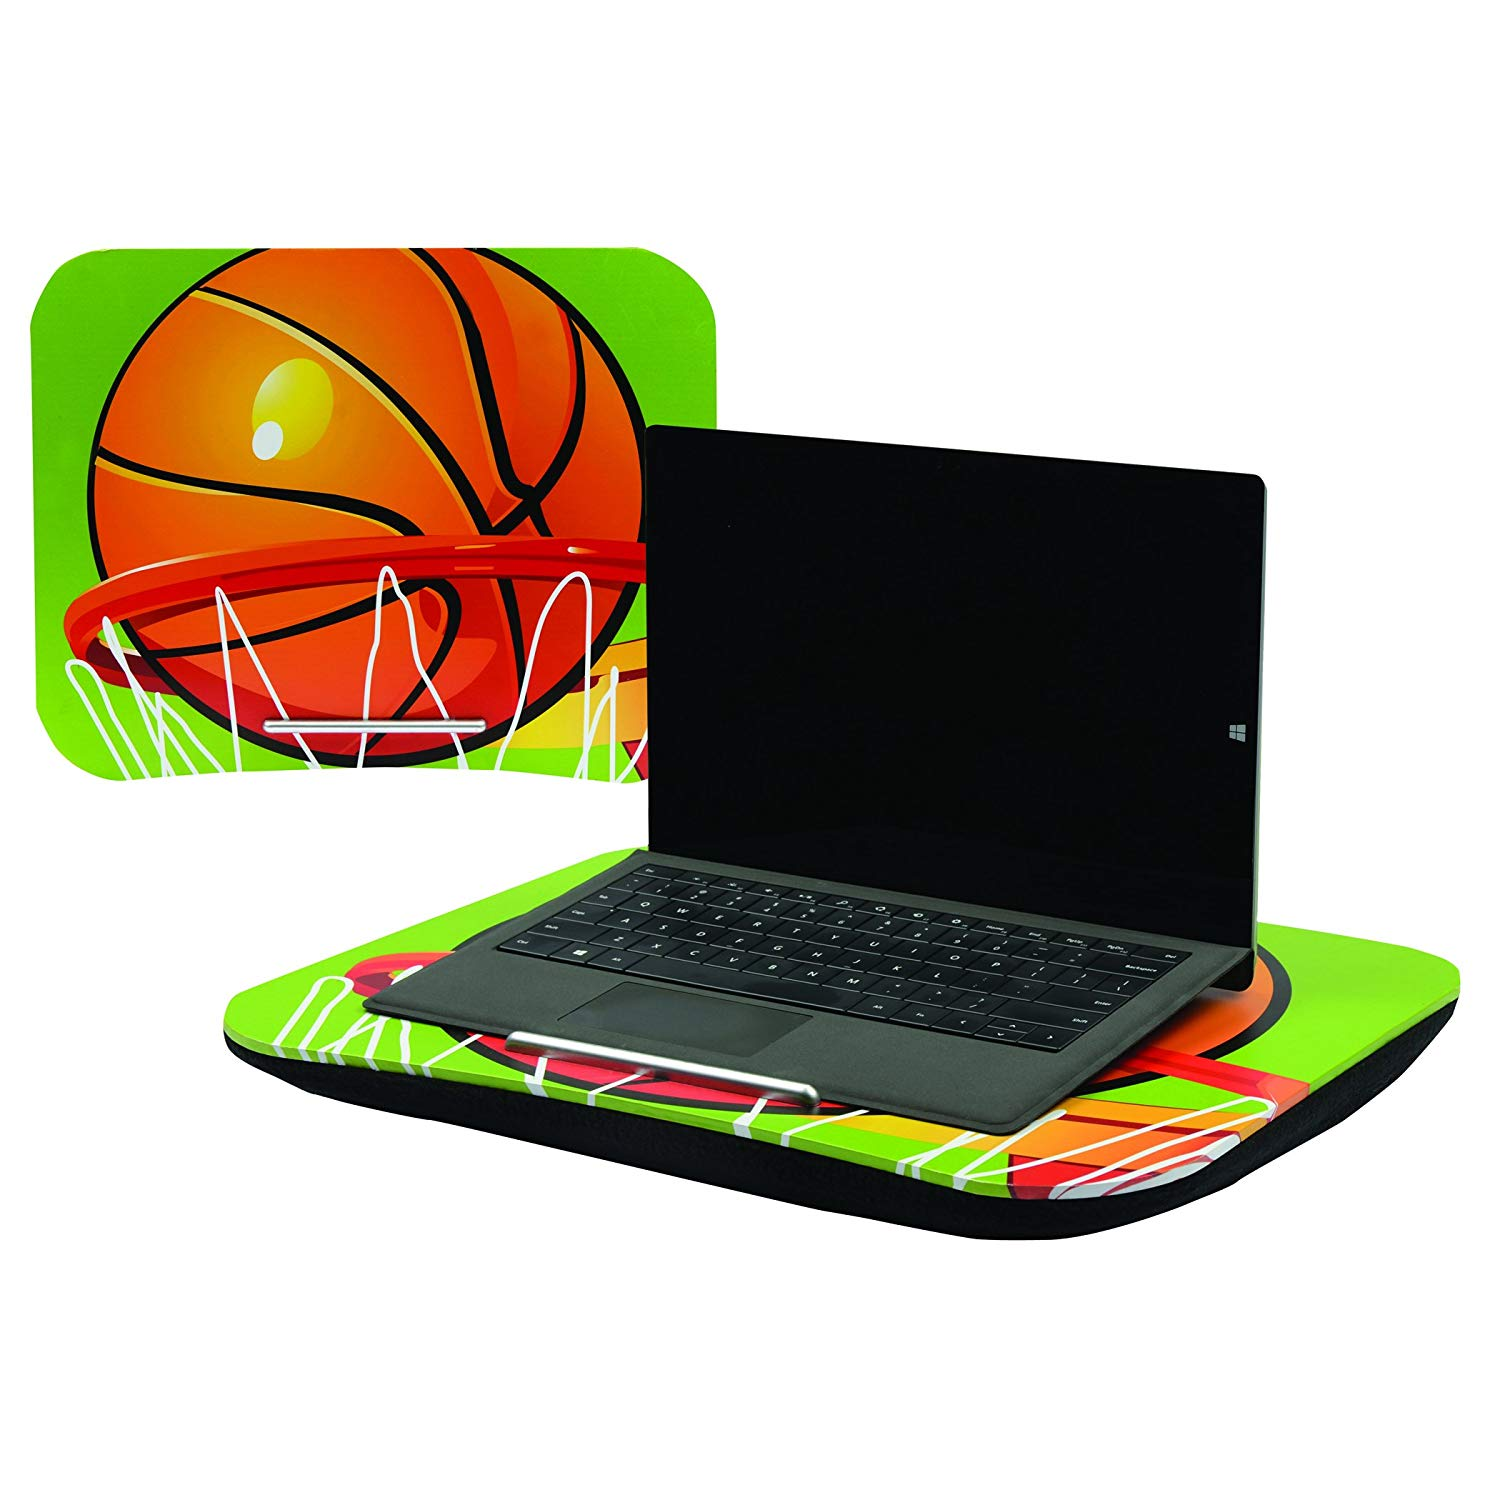 Milen - My Handy Lap Desk - Basketball Themed - Multi-purposed and Portable Workstation with Built-in Handle and Cushion